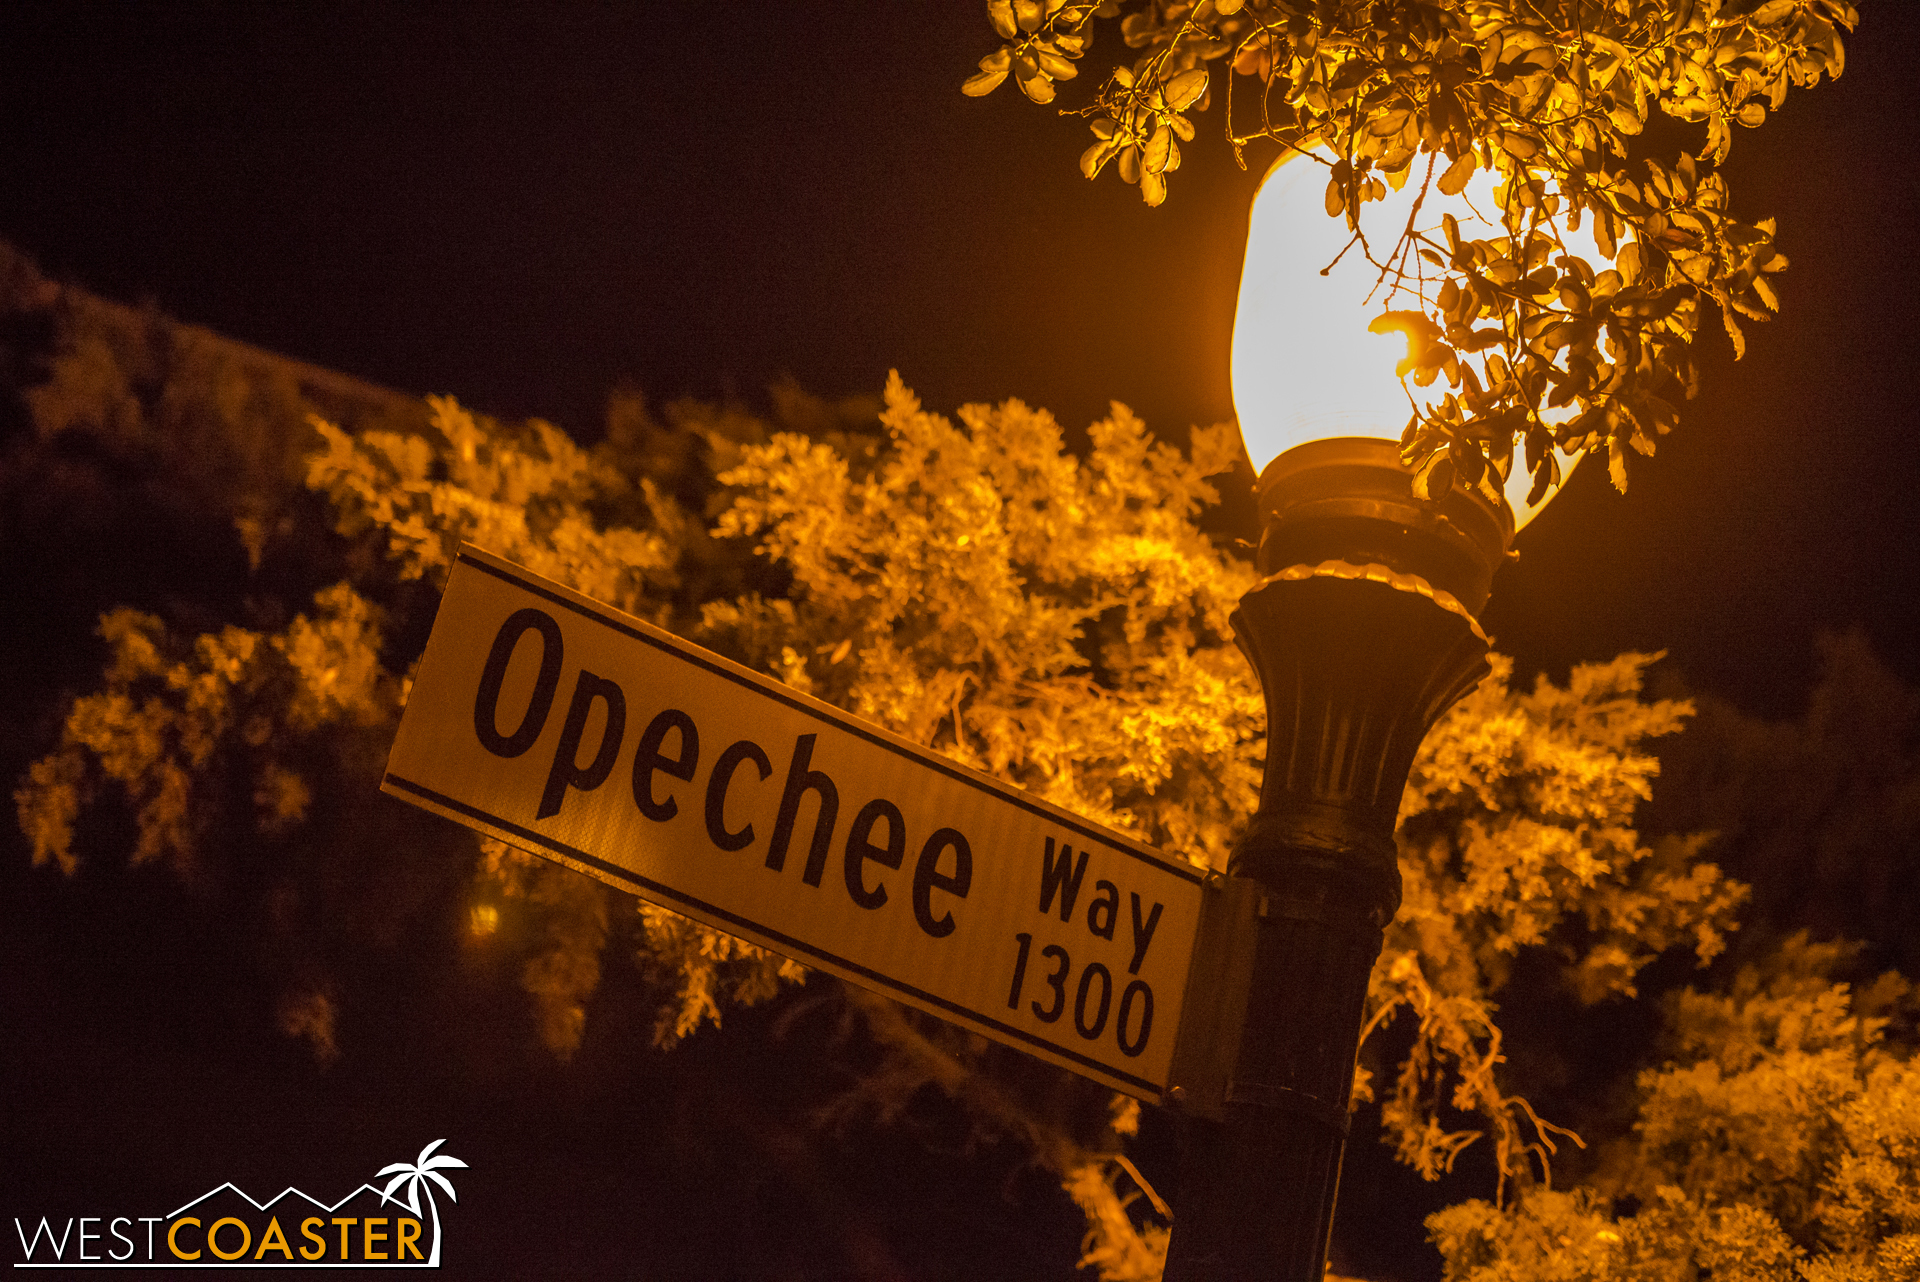 The Opechee Haunt is located, appropriately, on the 1300 block of Opechee Way, in the foothills of Glendale.